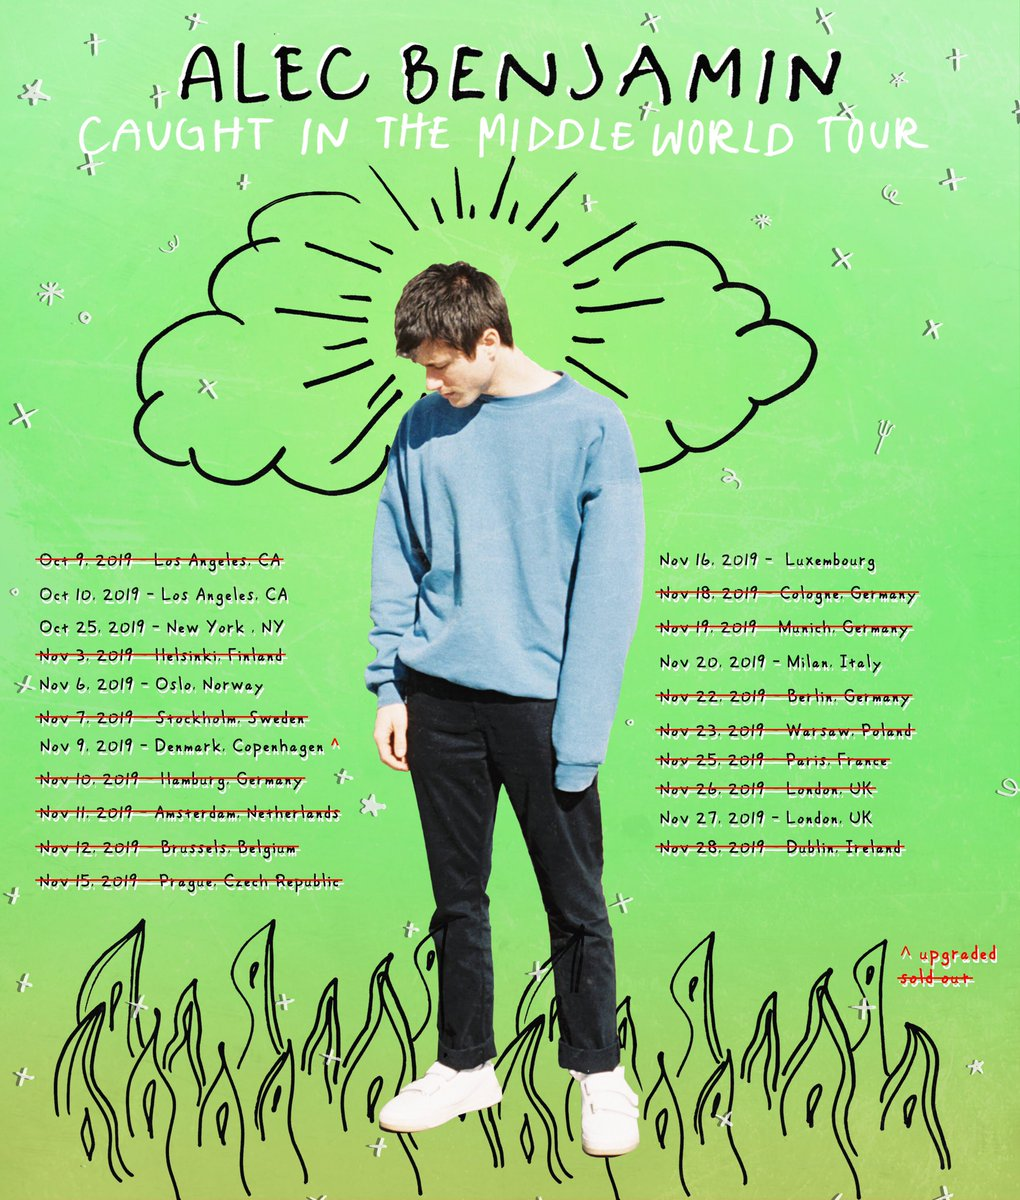 2nd LA , 2nd London, Oslo & NYC shows almost sold out alecbenjamin.com/tour